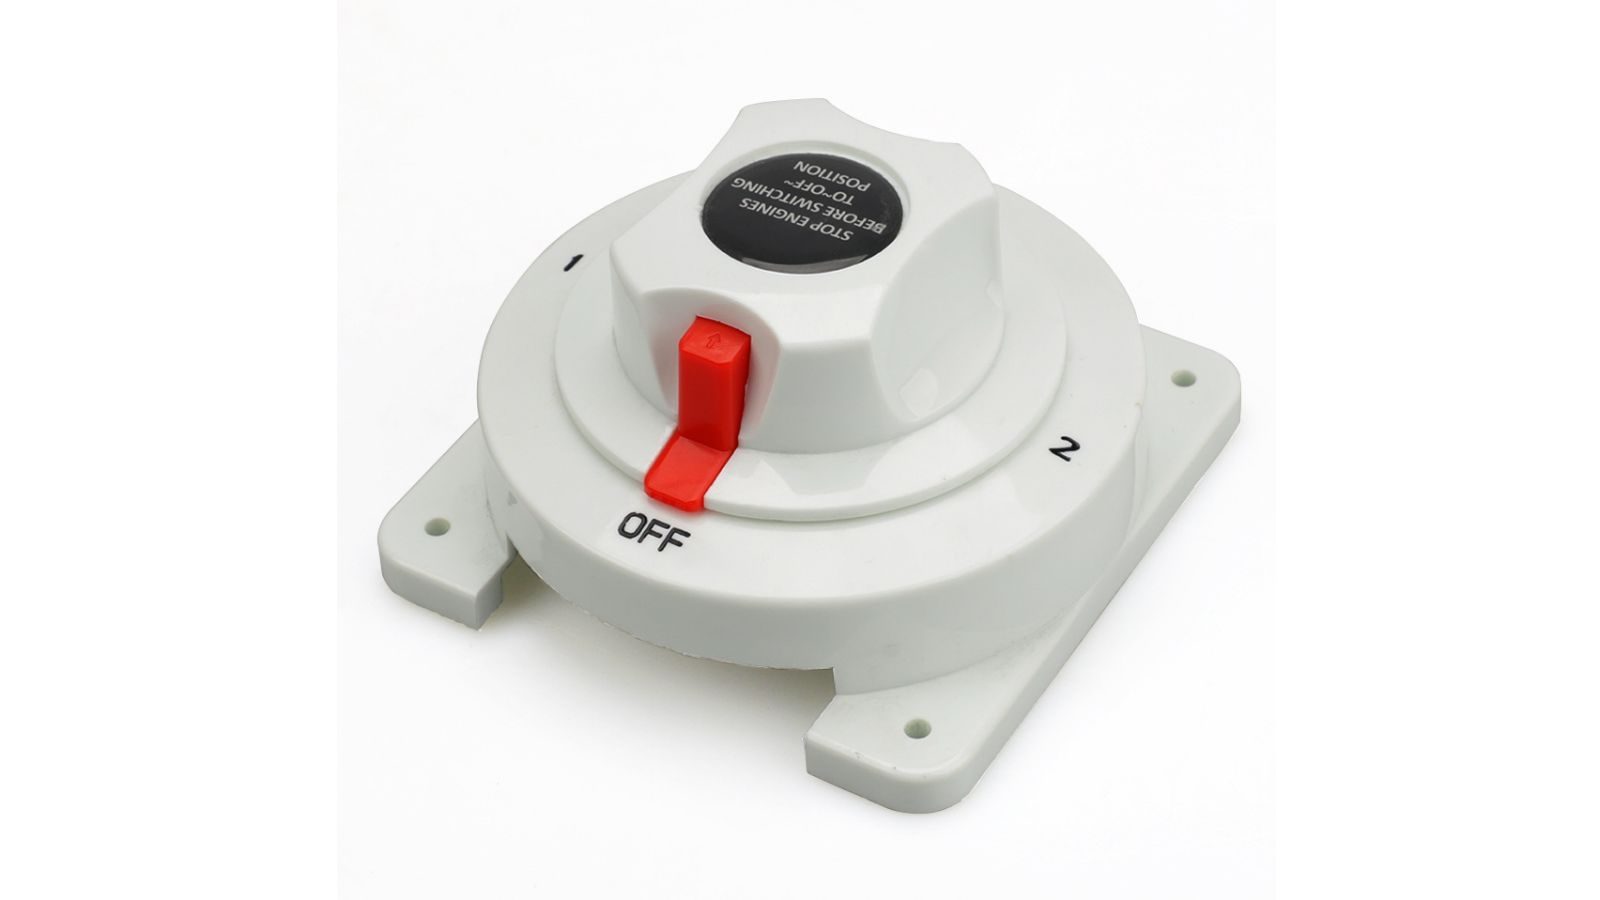 12V 48V Dual Battery Selector Switch Disconnect Power Cut Off On for Marine Boat